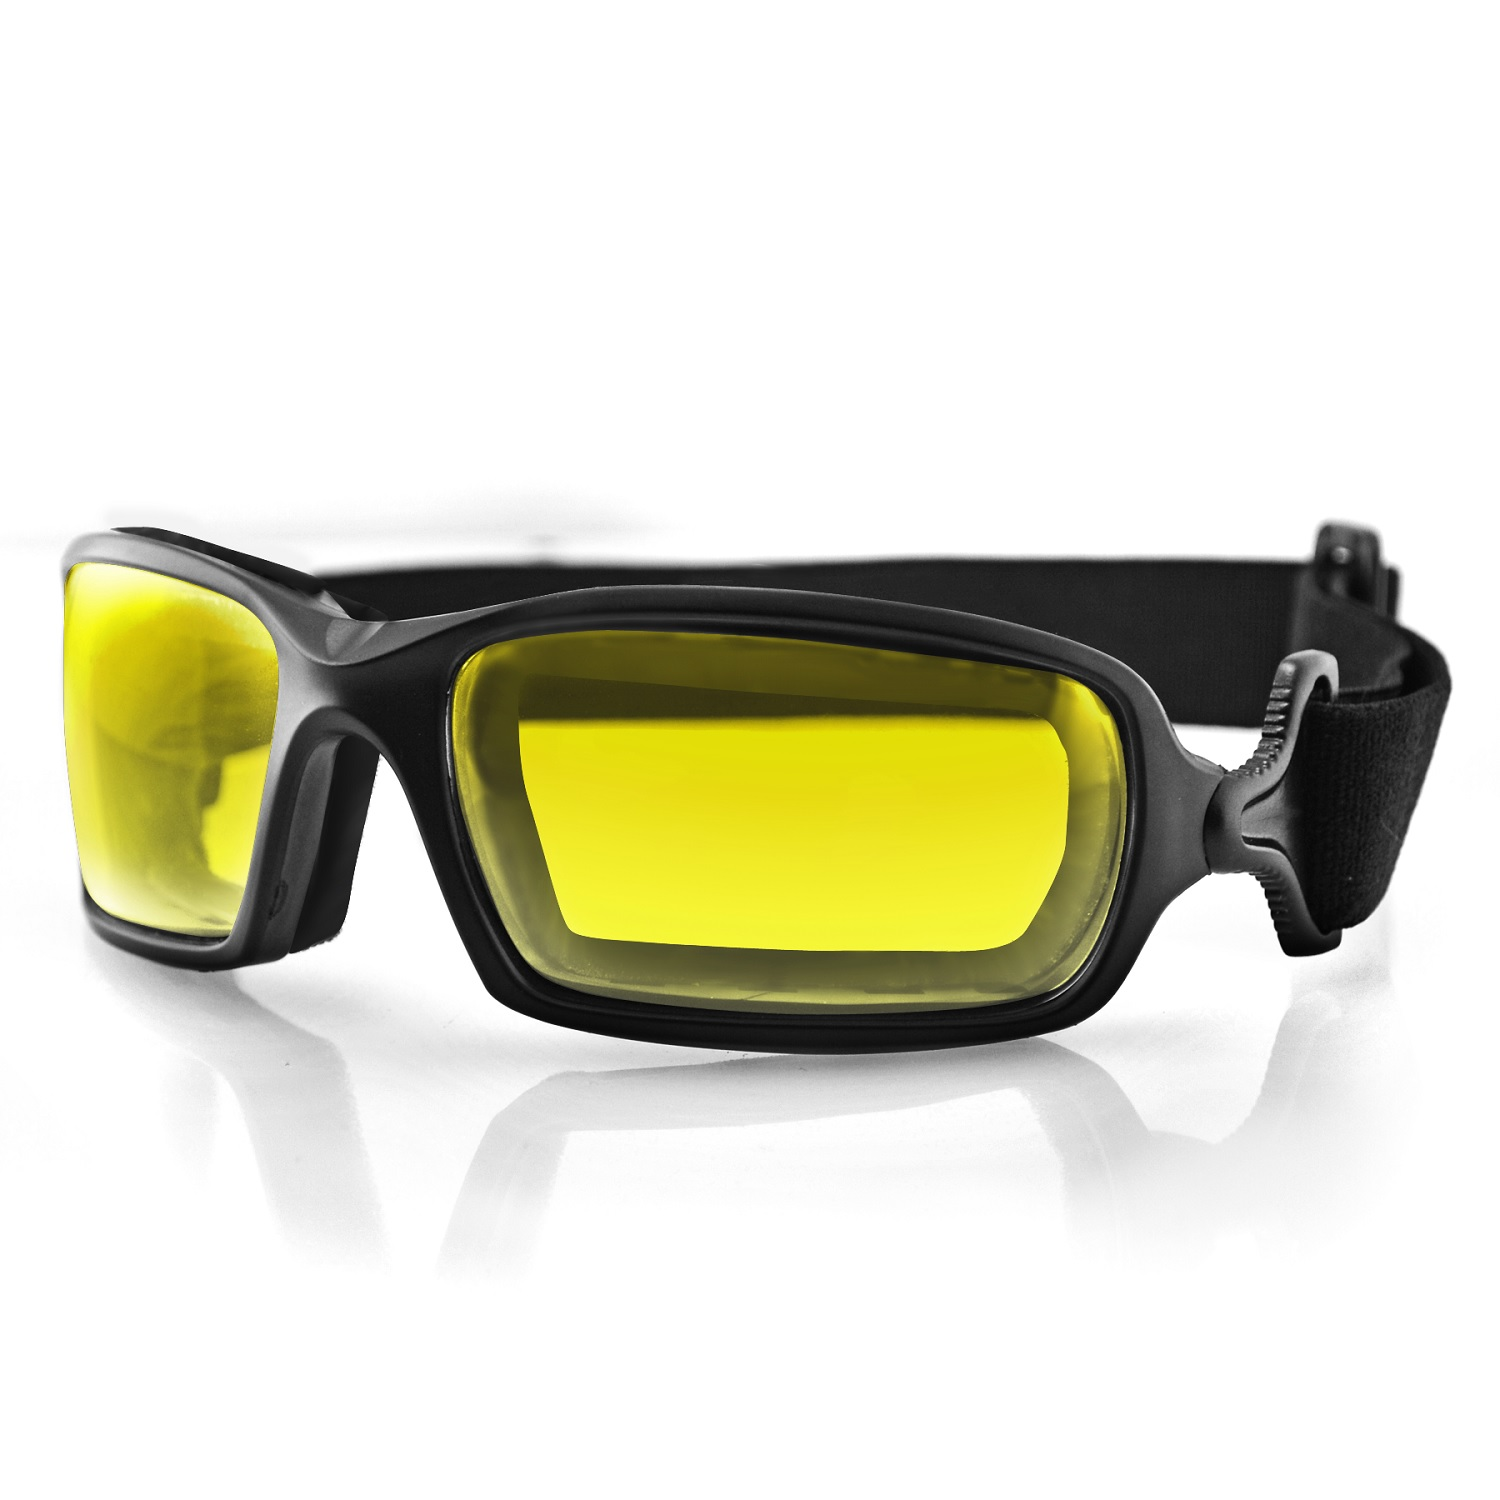 Bobster Fuel Biker Goggle, Anti-Fog Yellow Photochromic Lens